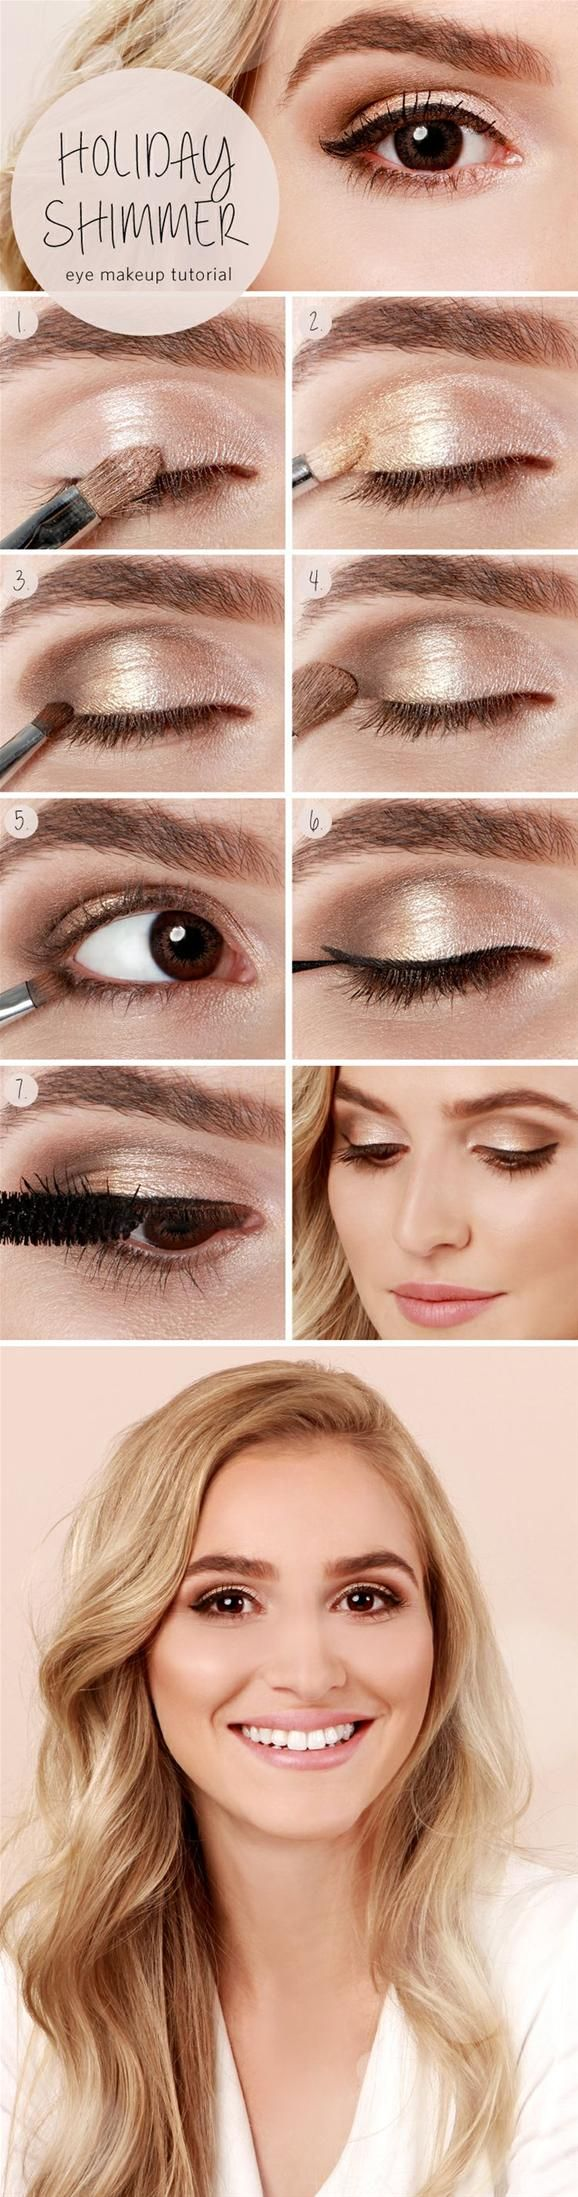 Shimmery Eye Makeup Tutorial - Head over to Pampadour.com for product suggestions to recreate this beauty look! Pampadour.com is a community of beauty bloggers, professionals, brands and beauty enthusiasts! #provestra